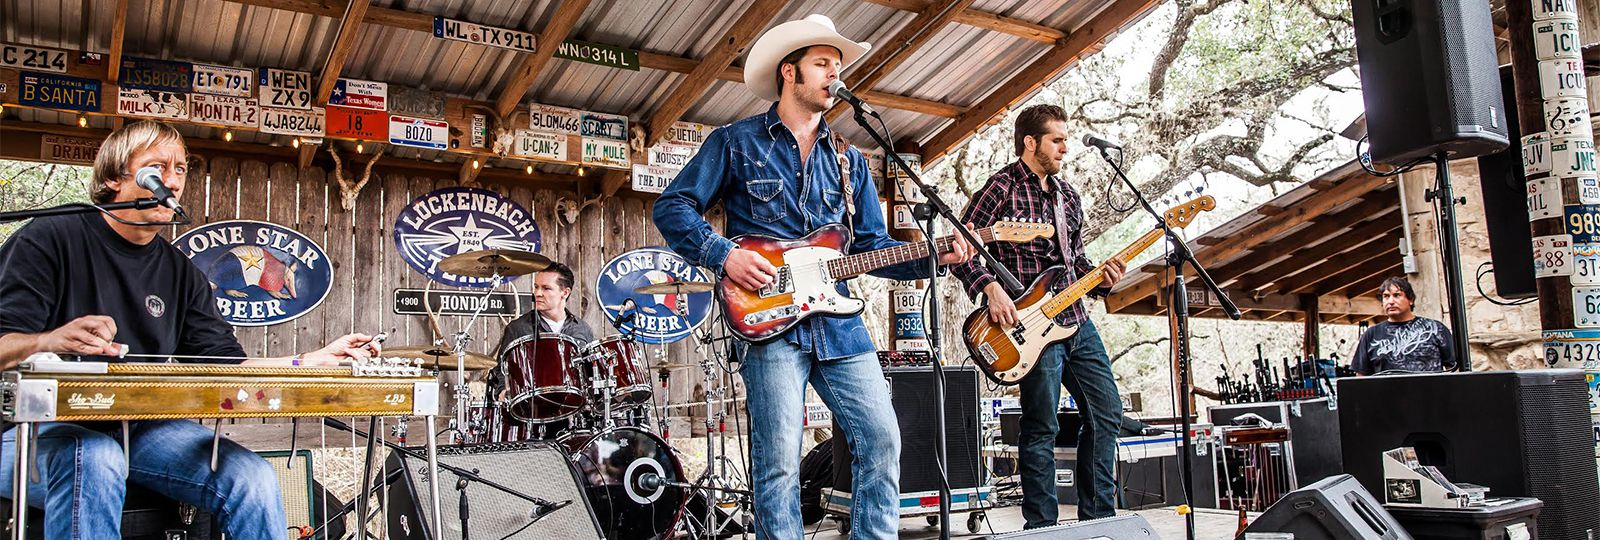 Weldon Henson and the Honky Tonk Frontier band playing their monthly residency in Luckenback